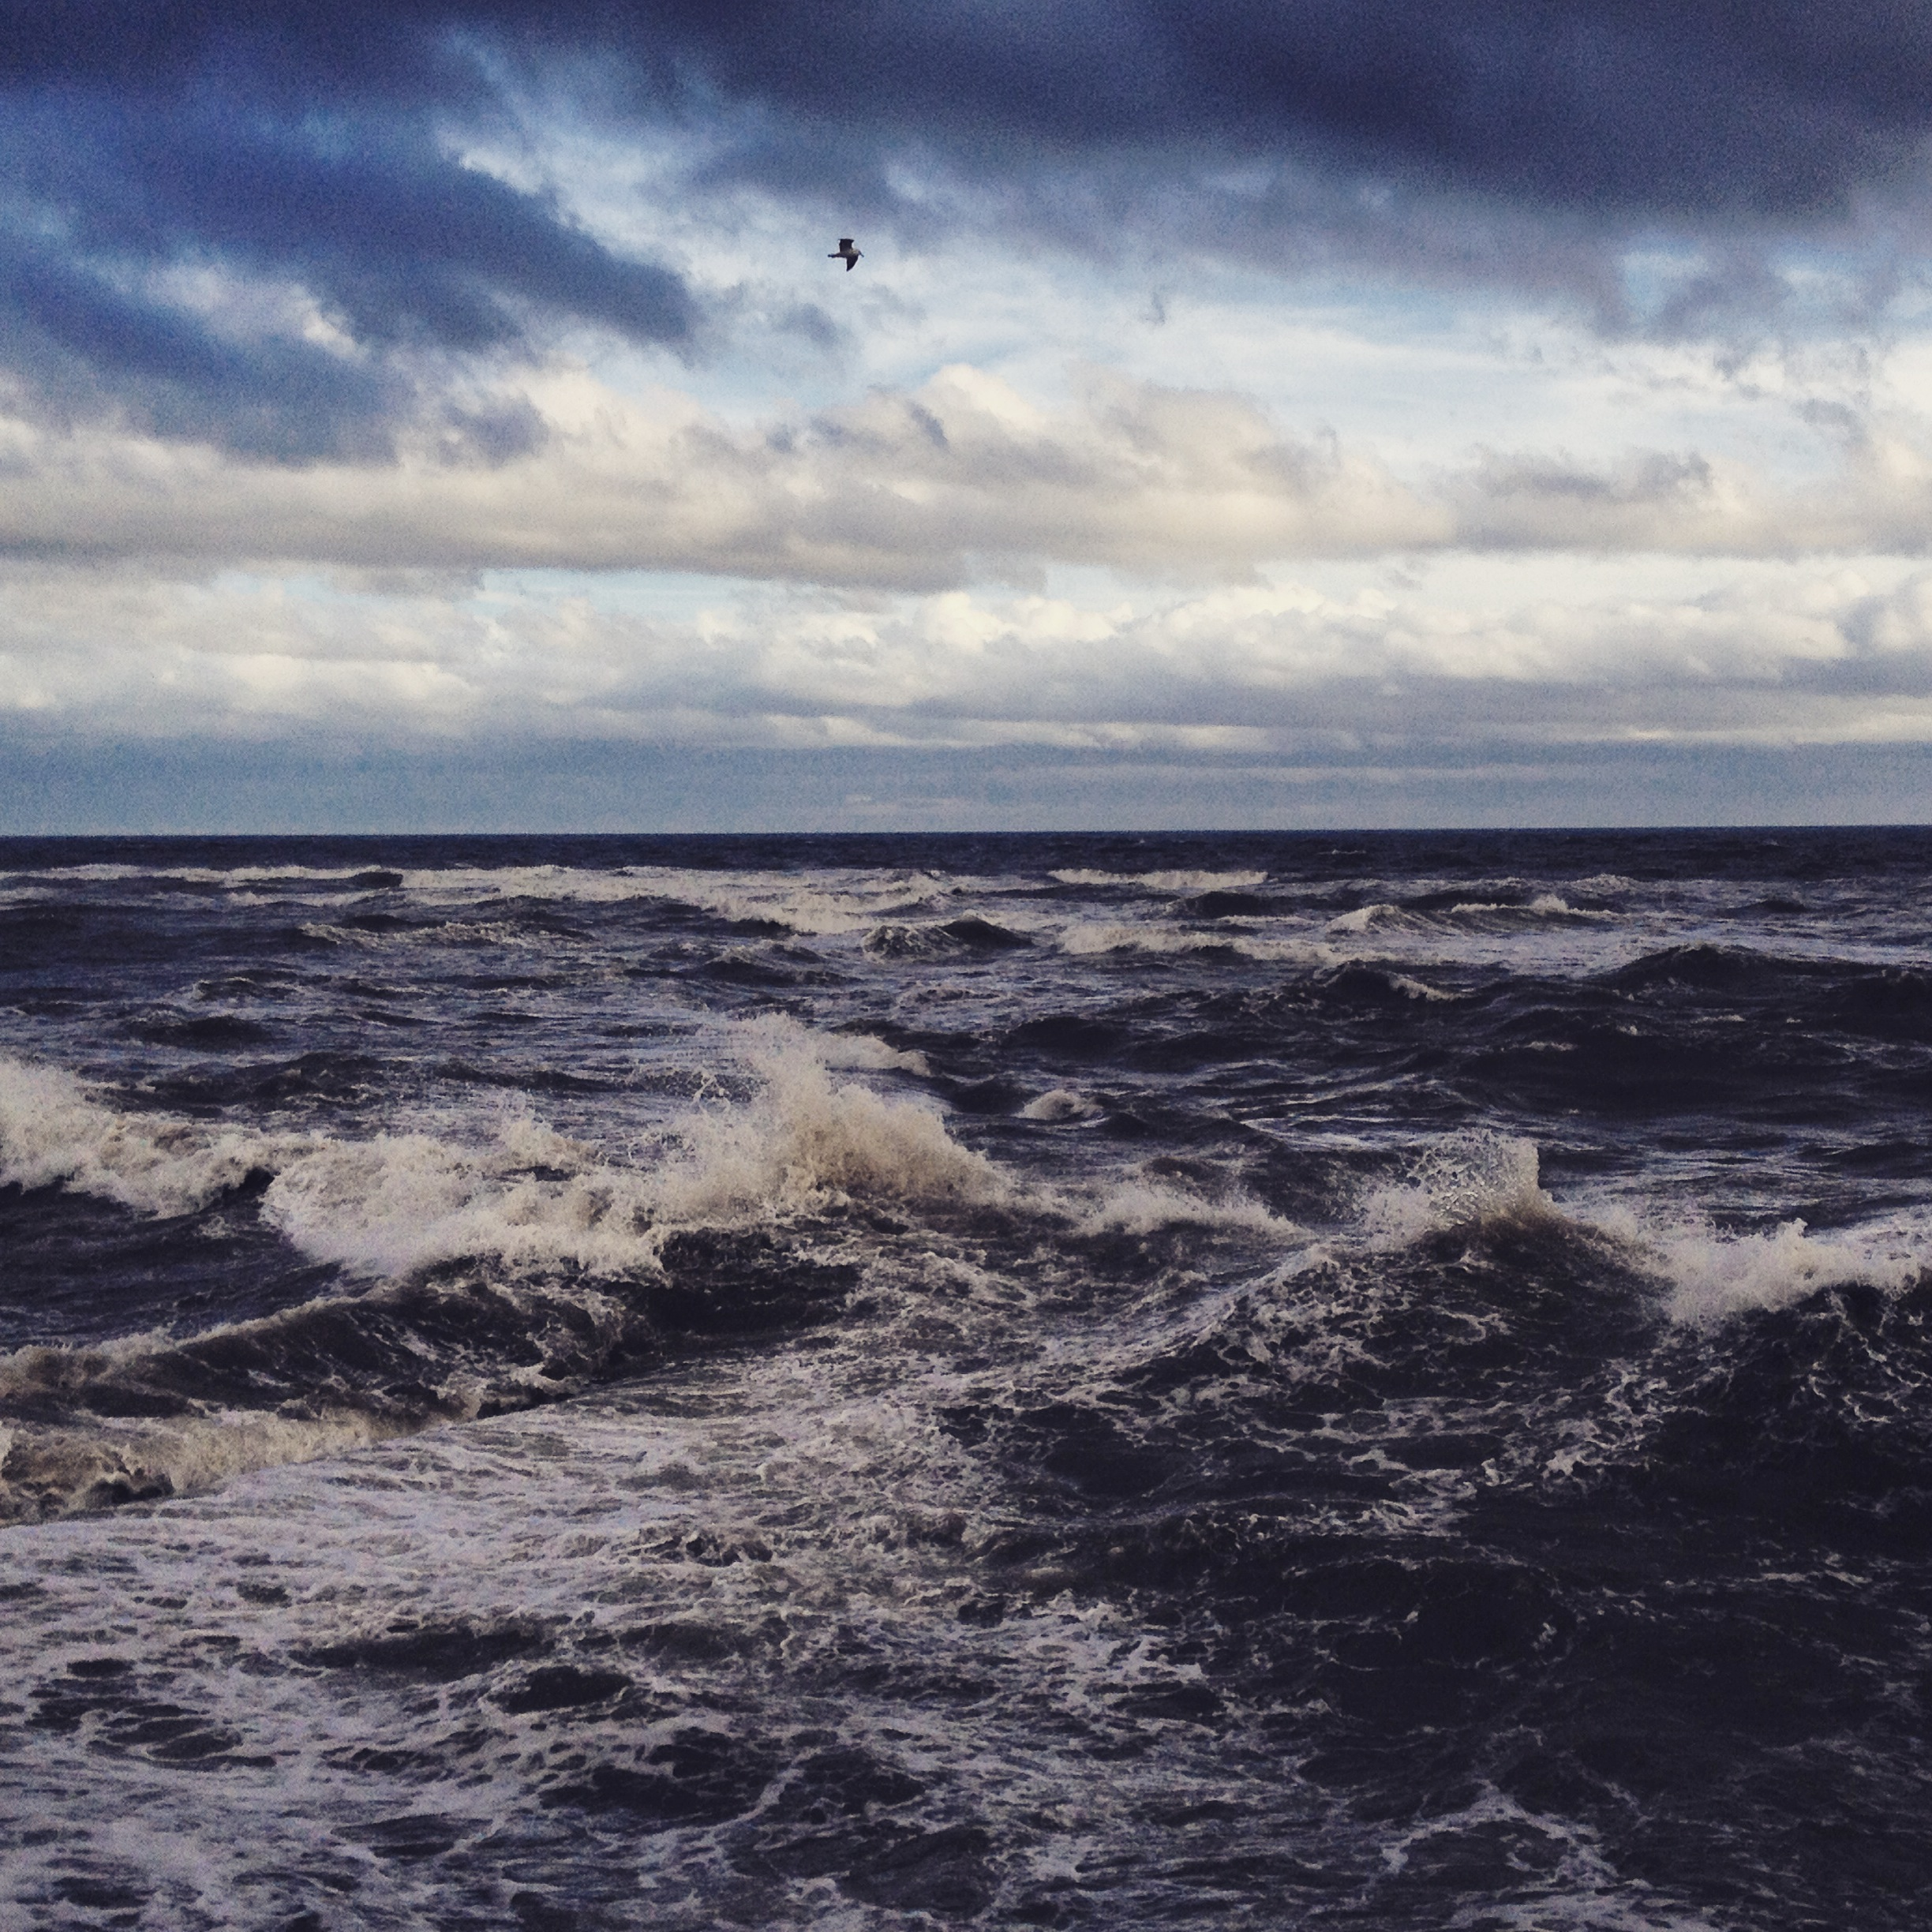 Stormy seas in Arbroath. I got in to trouble for sloping off and taking pictures whilst the waves were crashing: people were worried I had got swept away!